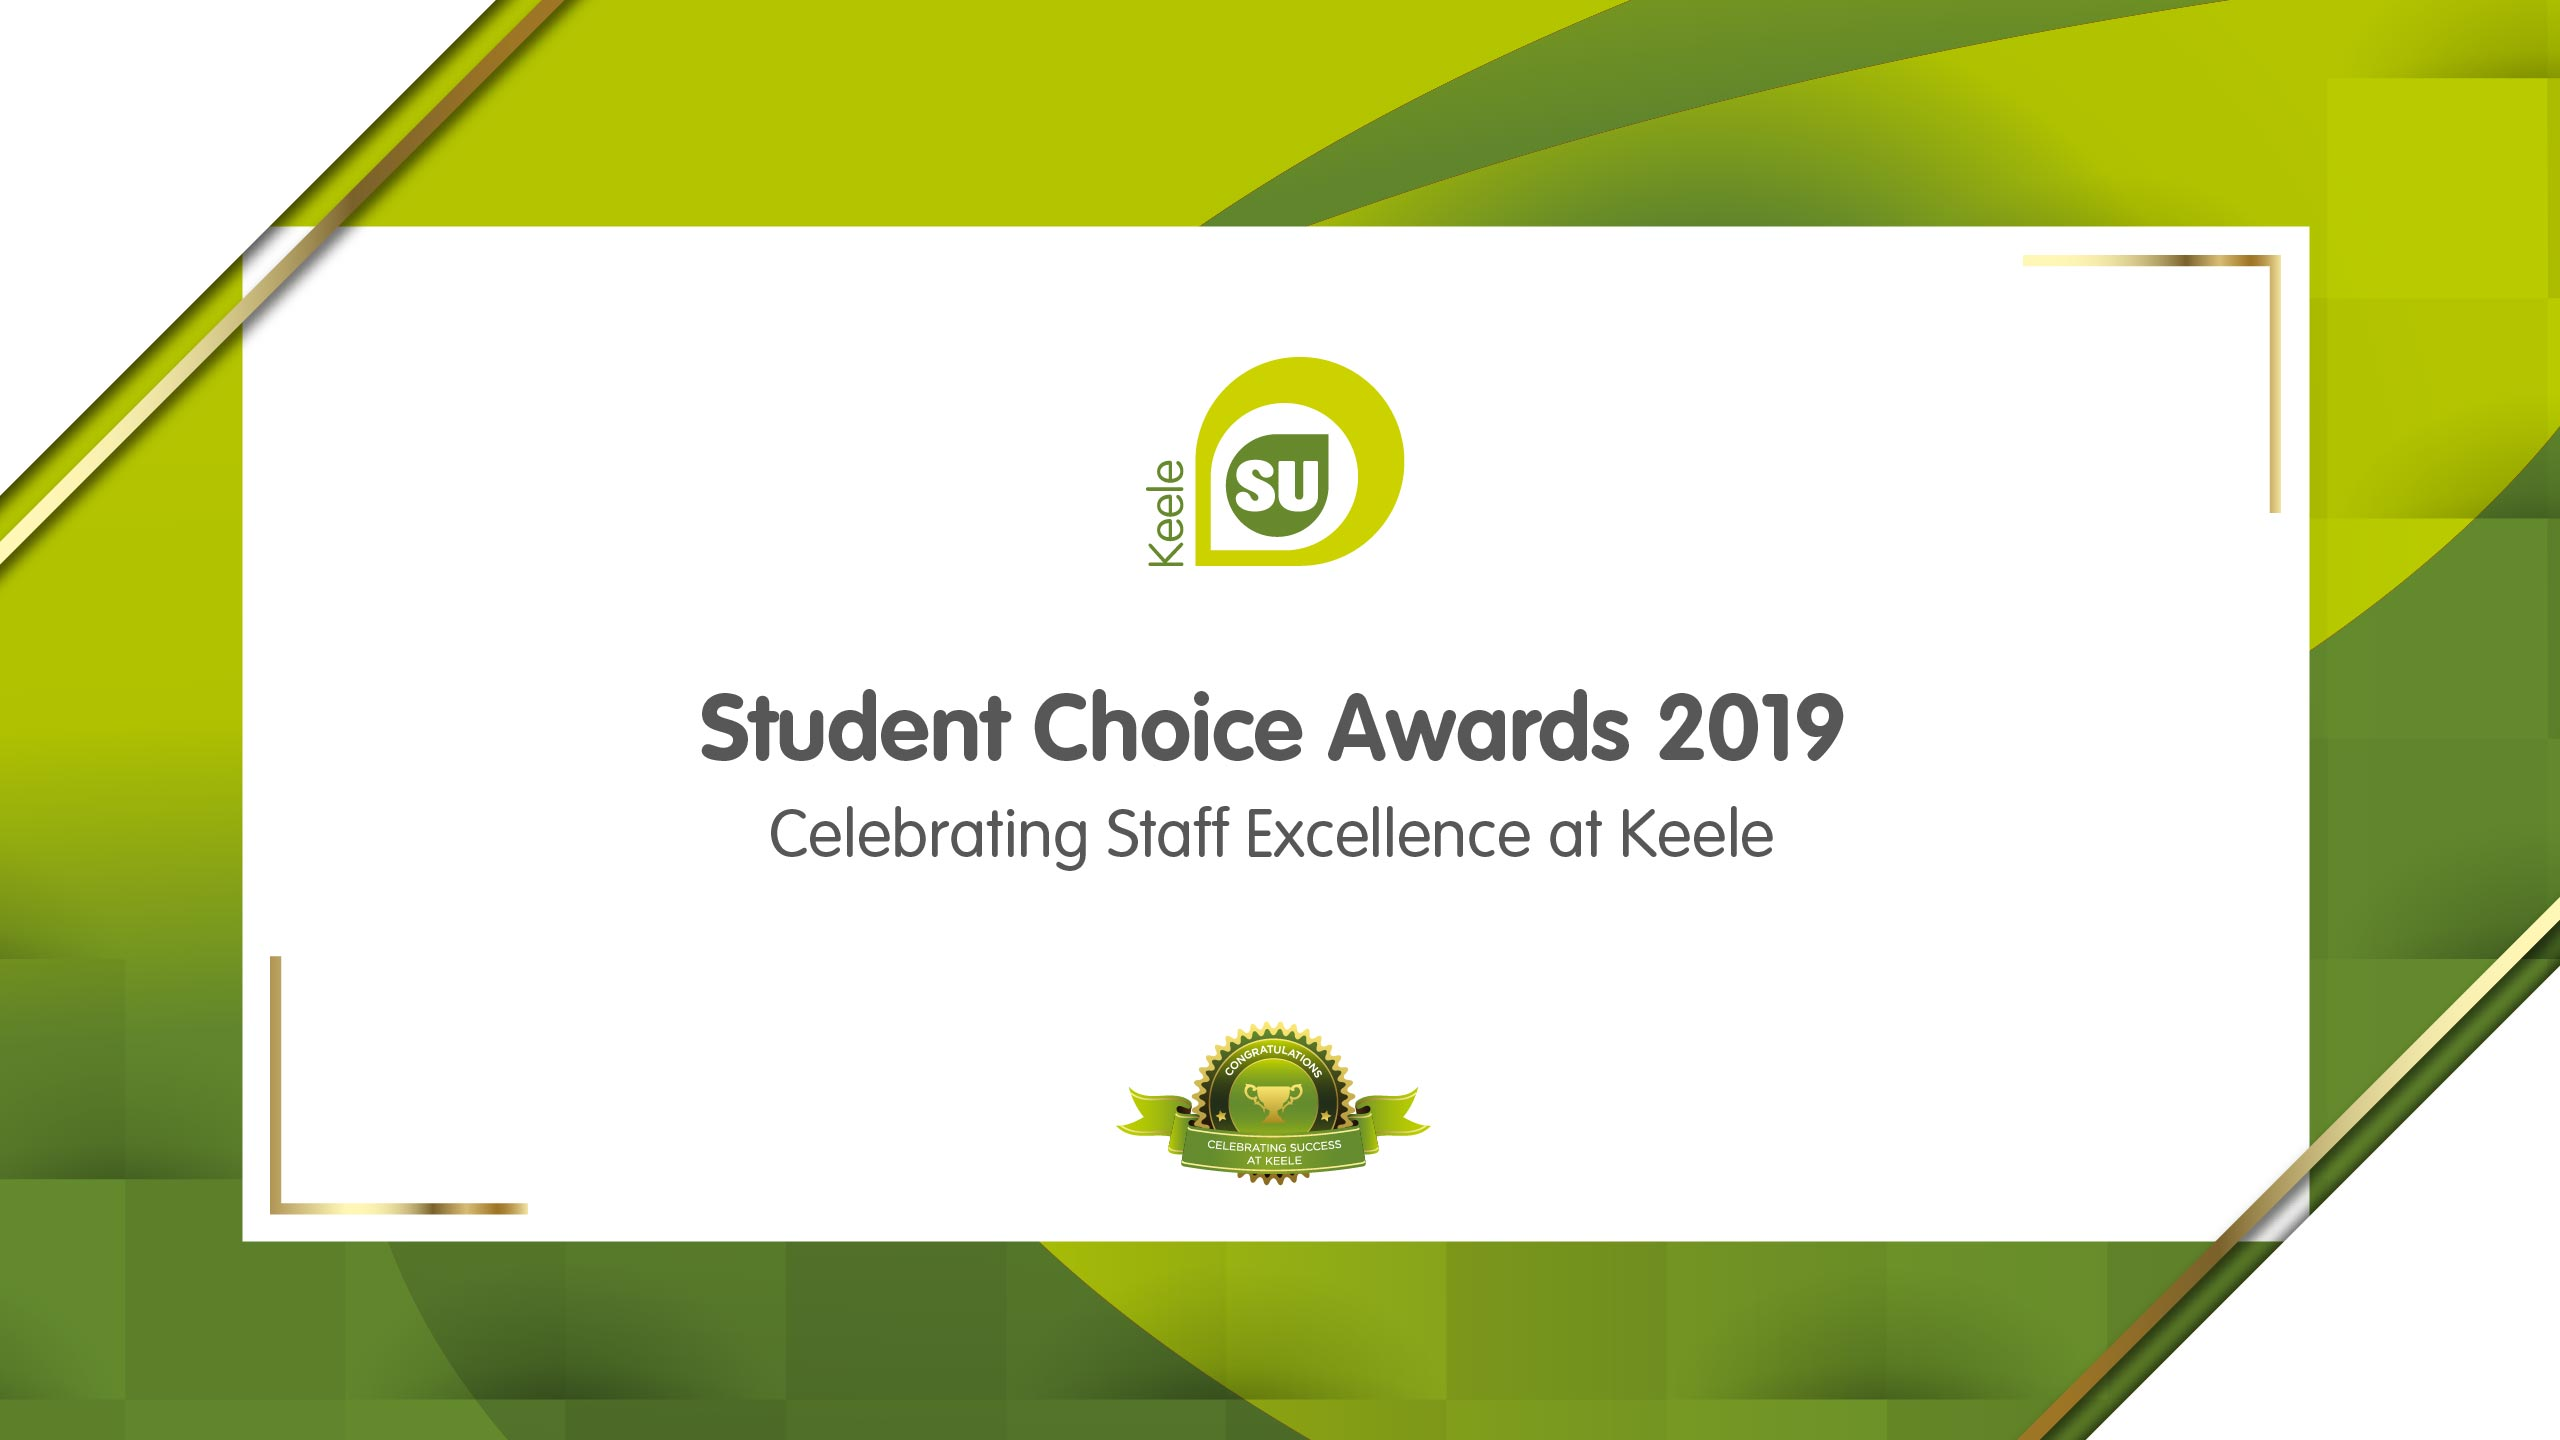 Student Choice Awards 2019